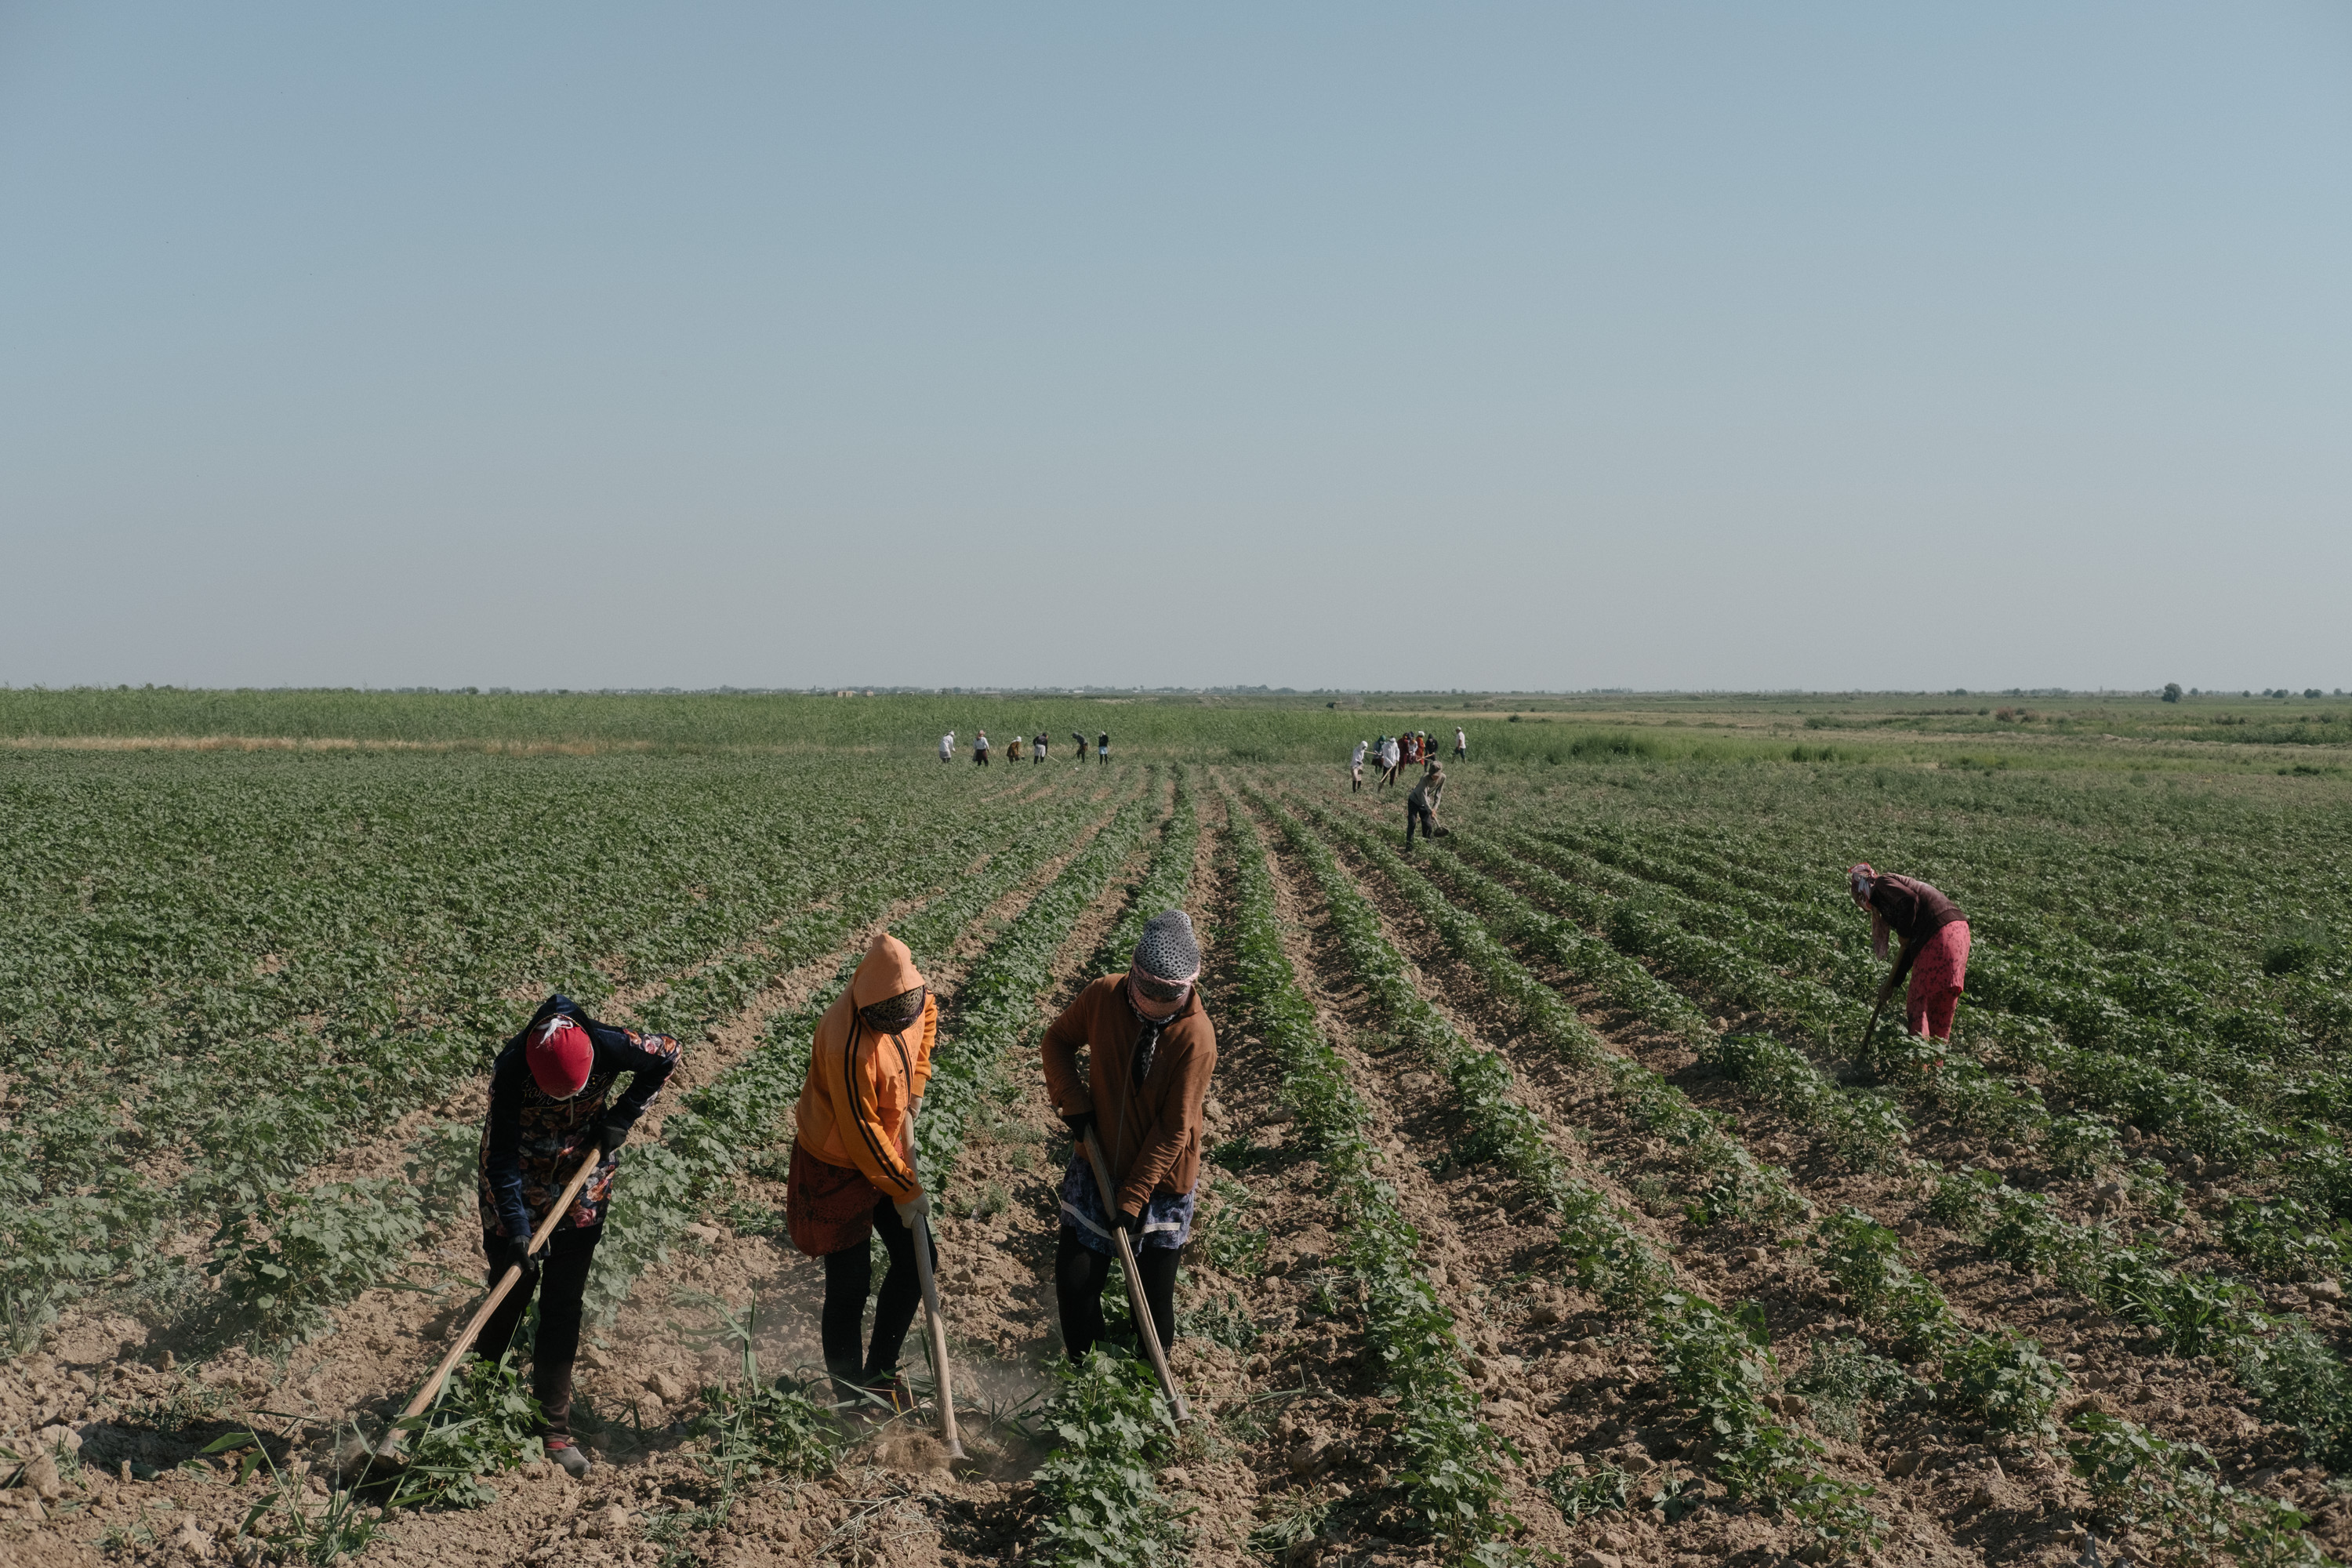 Forced Labor Persists in Uzbekistan's Cotton Fields